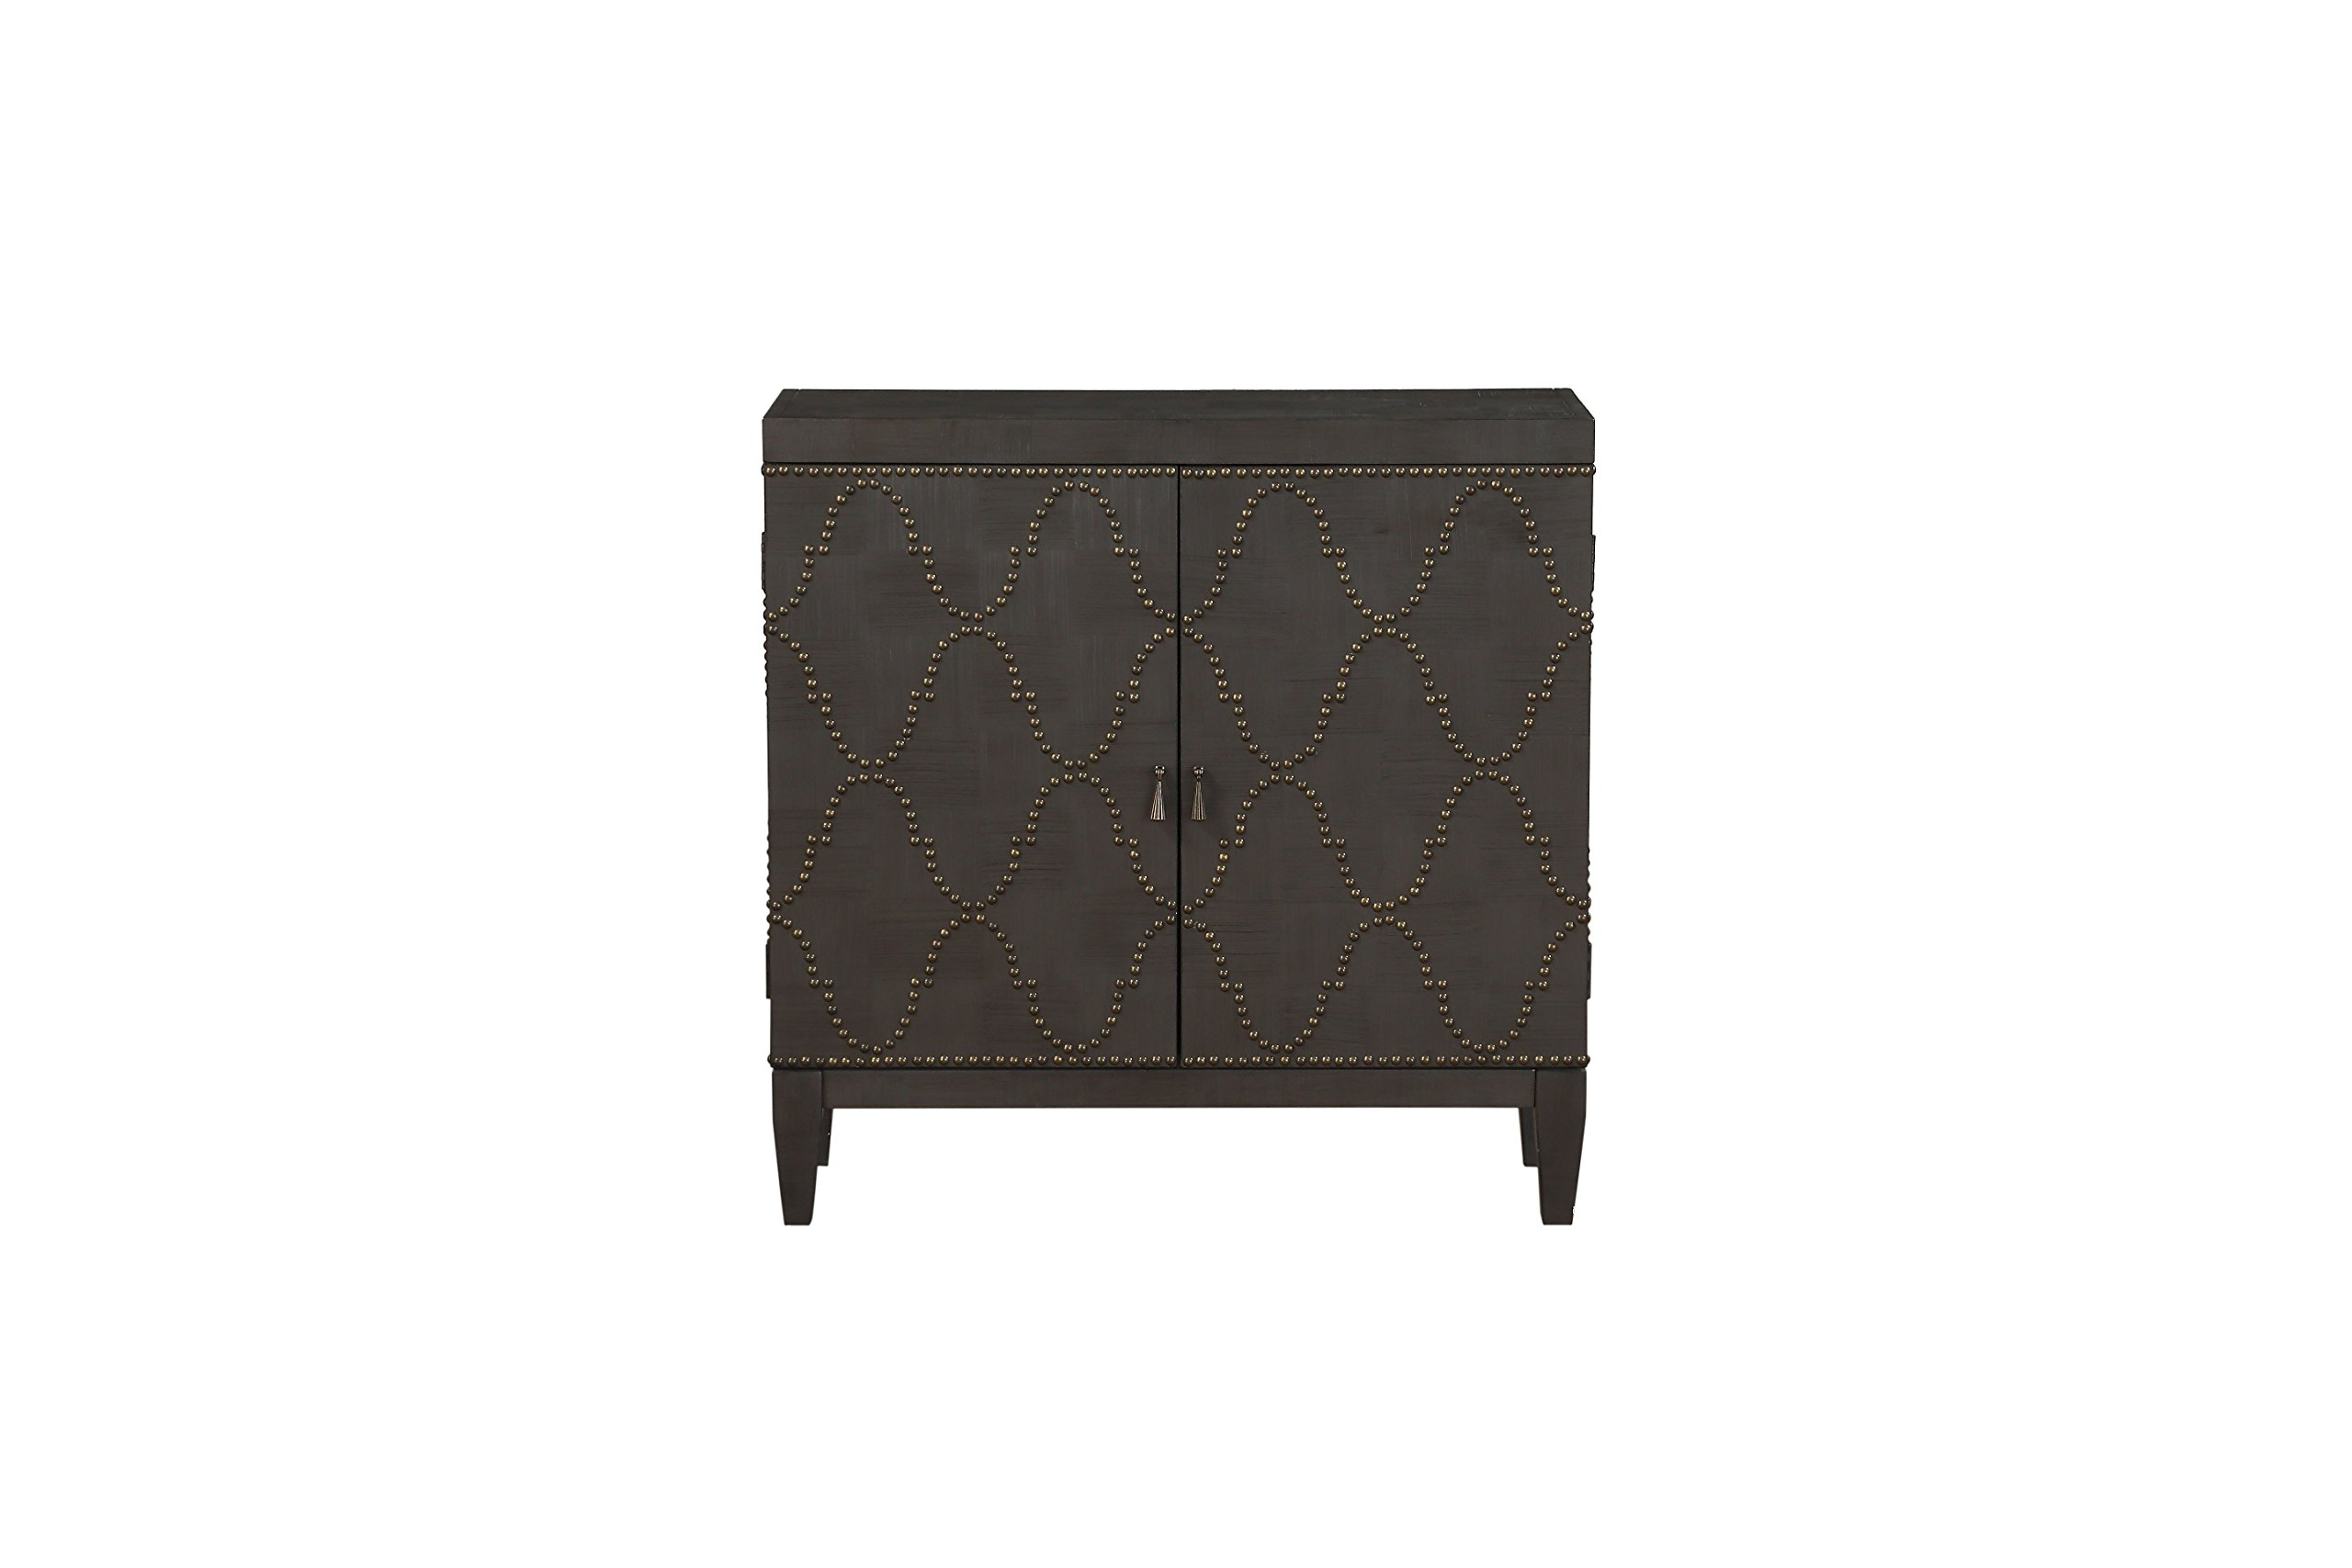 ACME Furniture 90298 Cherie Console Table, Antique Black by Acme Furniture (Image #2)